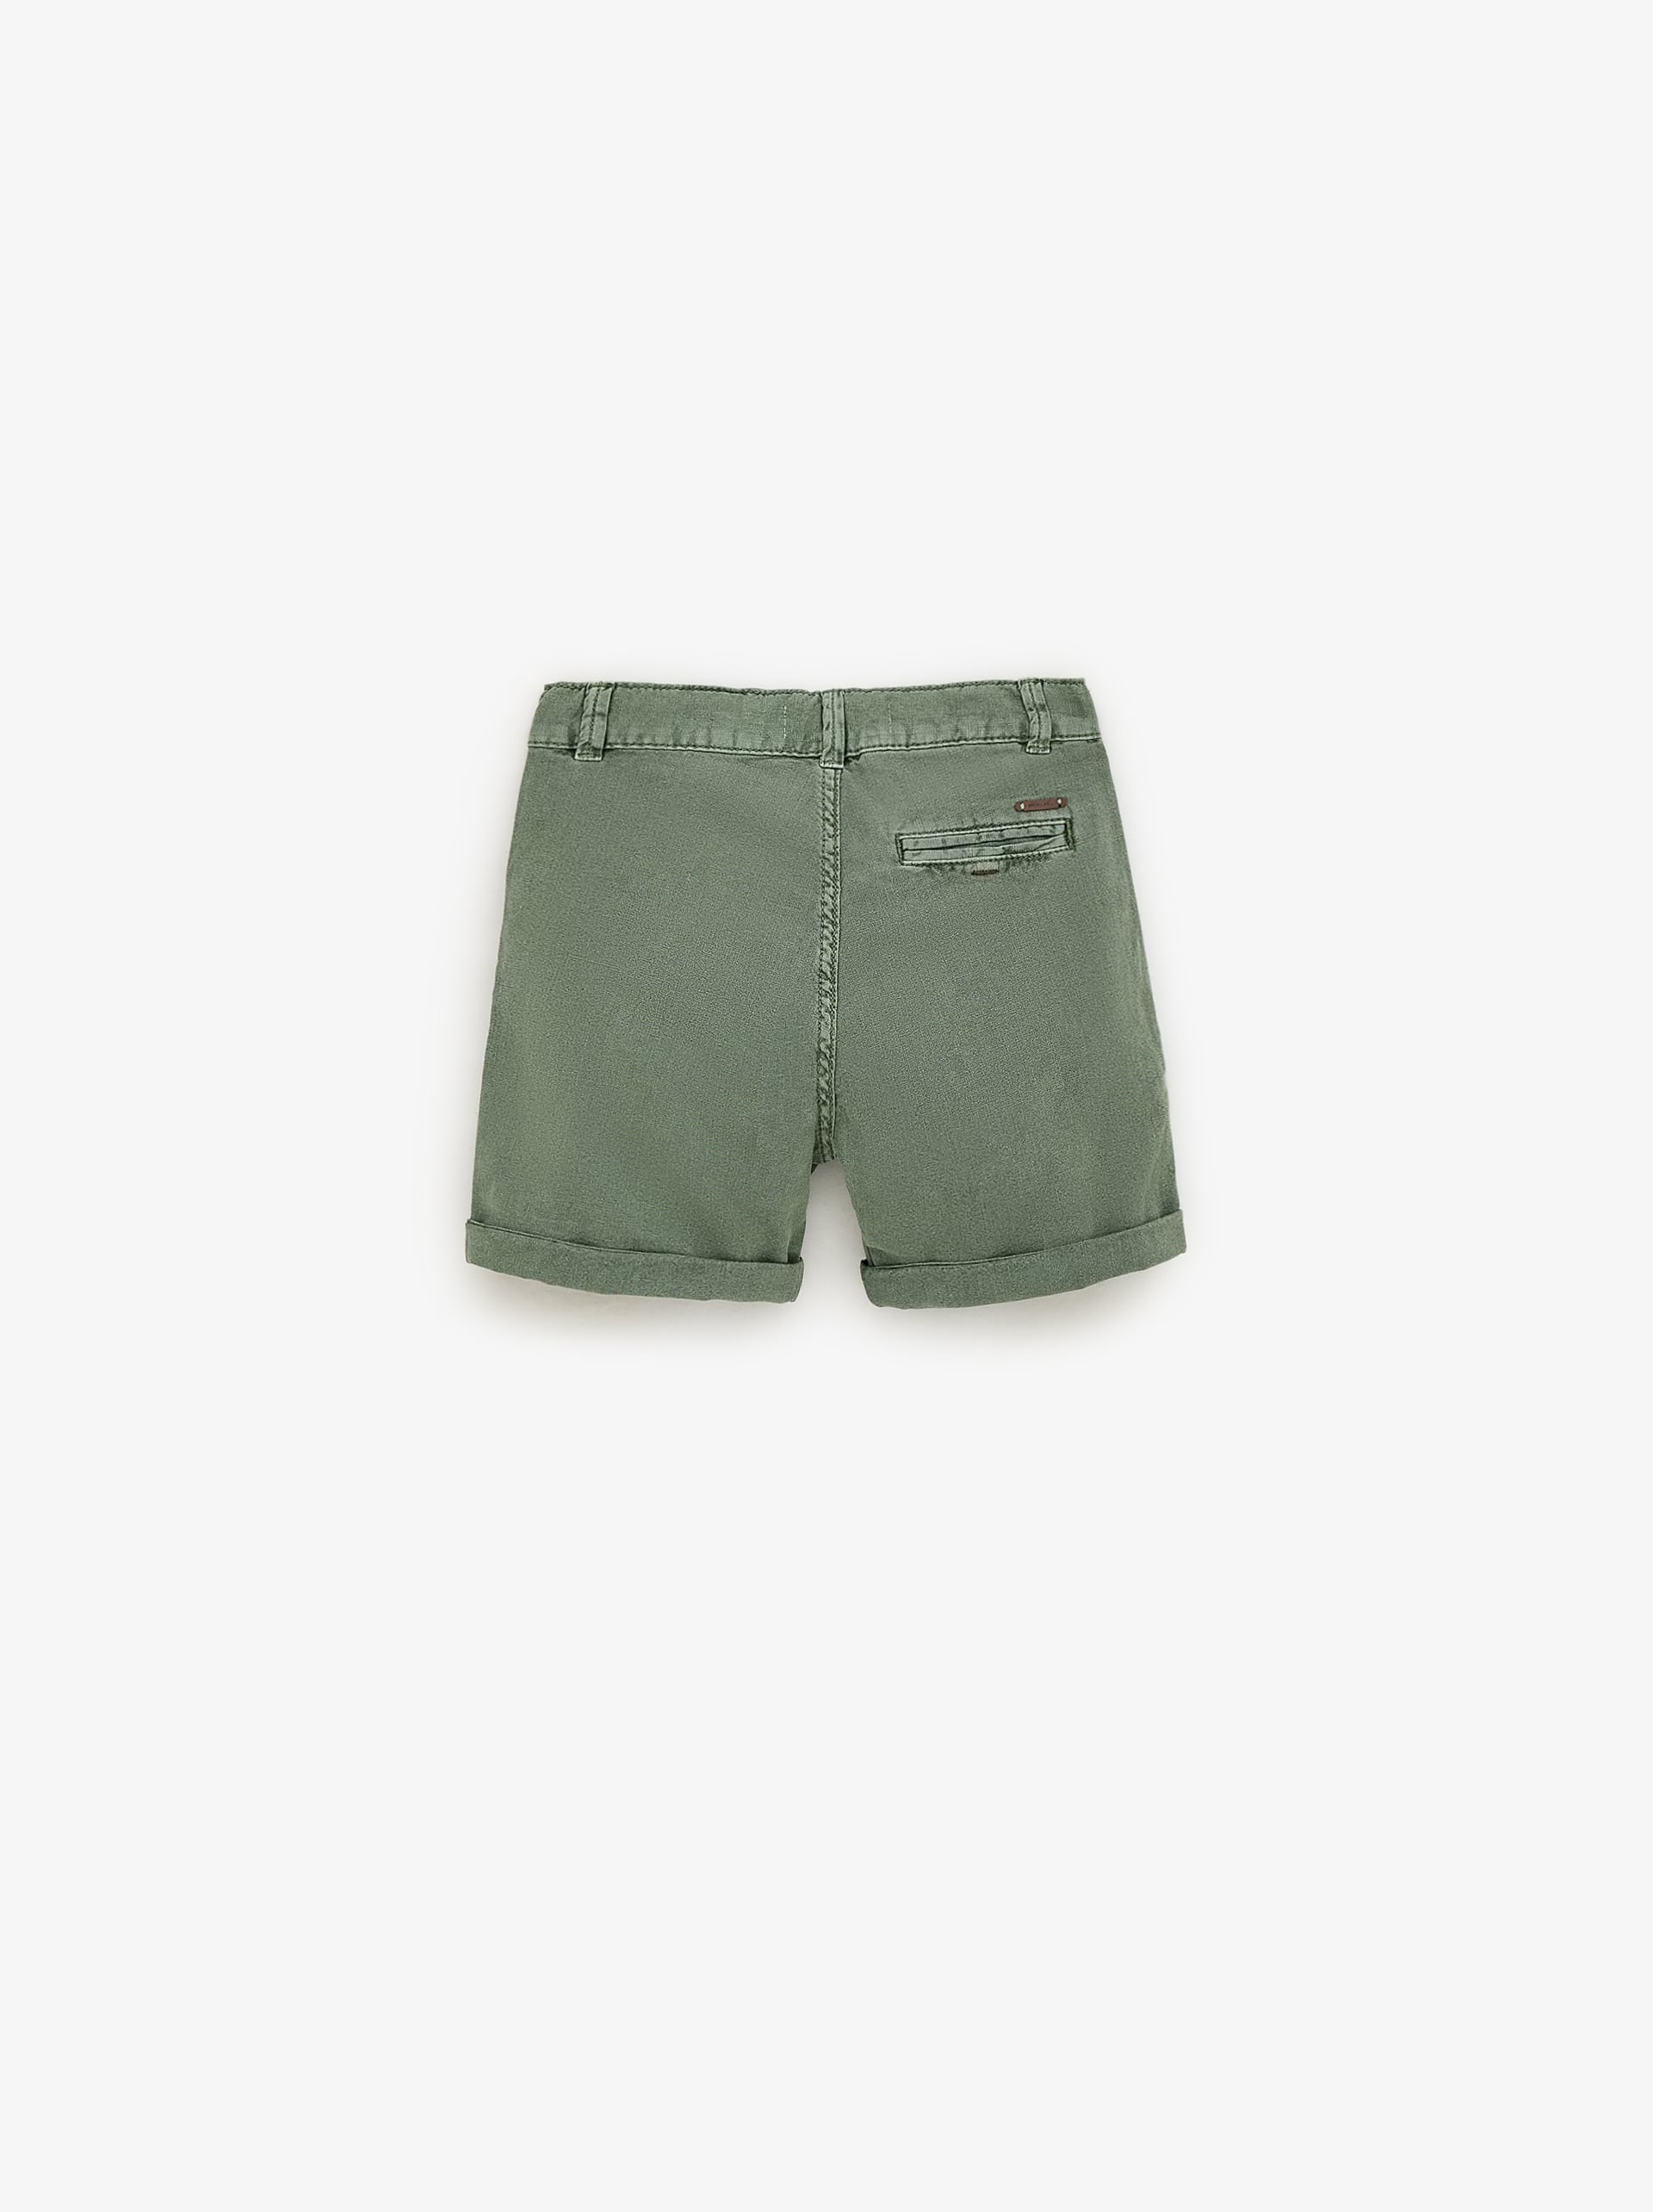 78bb40c629 TEXTURED CARGO BERMUDA SHORTS - TROUSERS AND SHORTS-BOY | 5 - 14 yrs ...